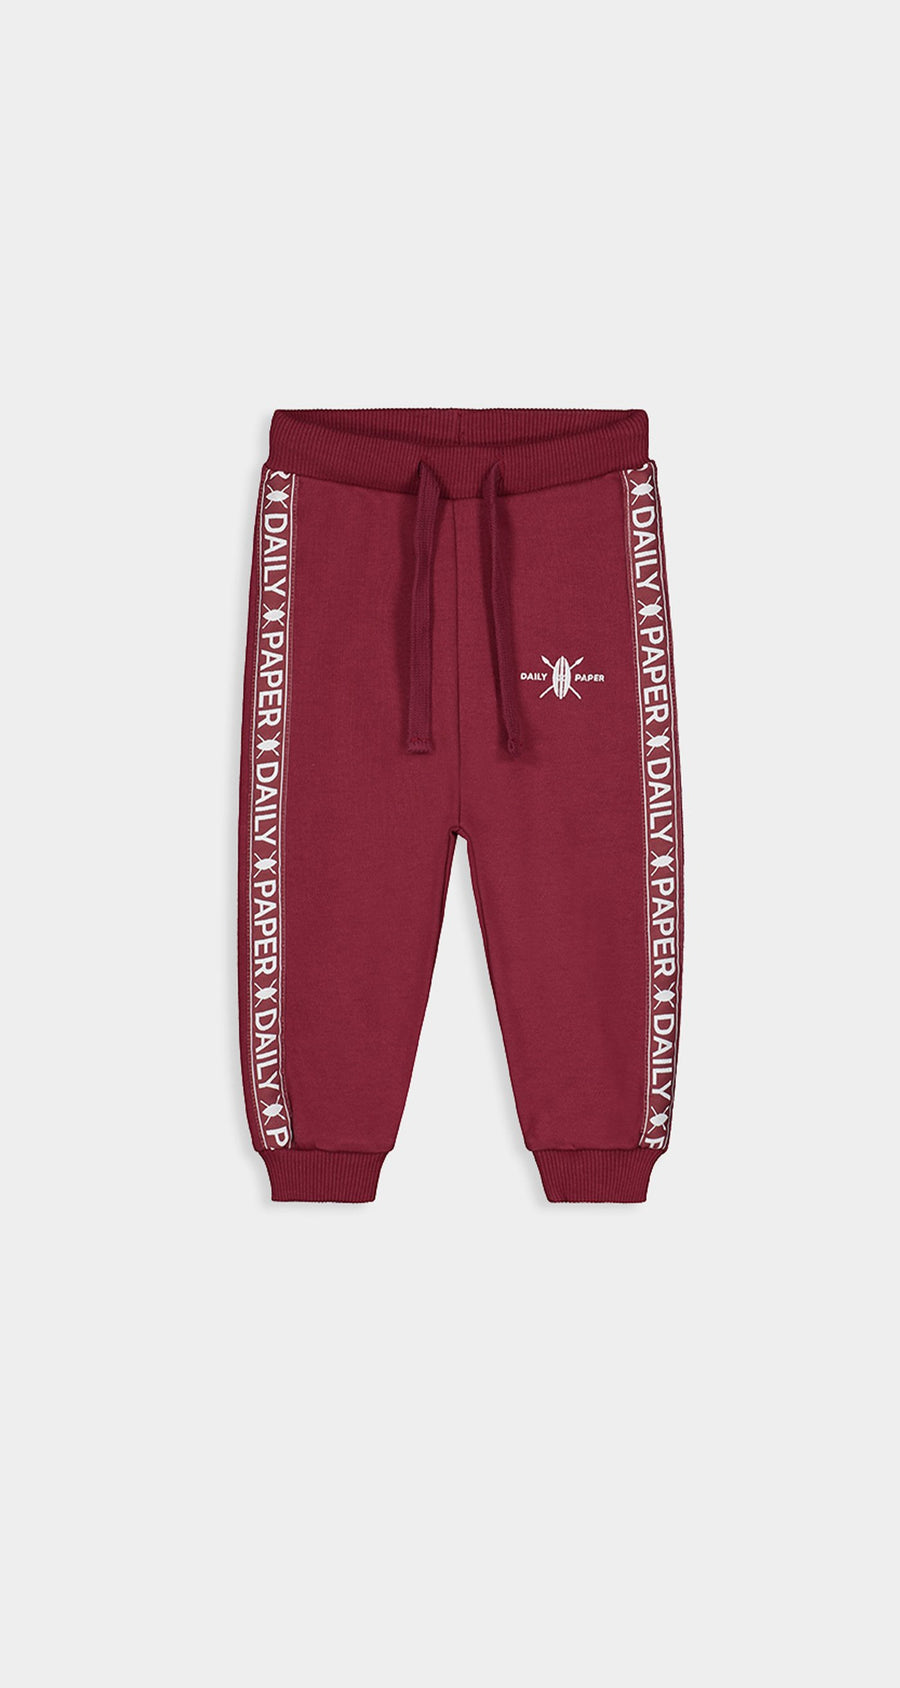 Daily Paper - Bordeaux Kids Tape Logo Track Pants Front